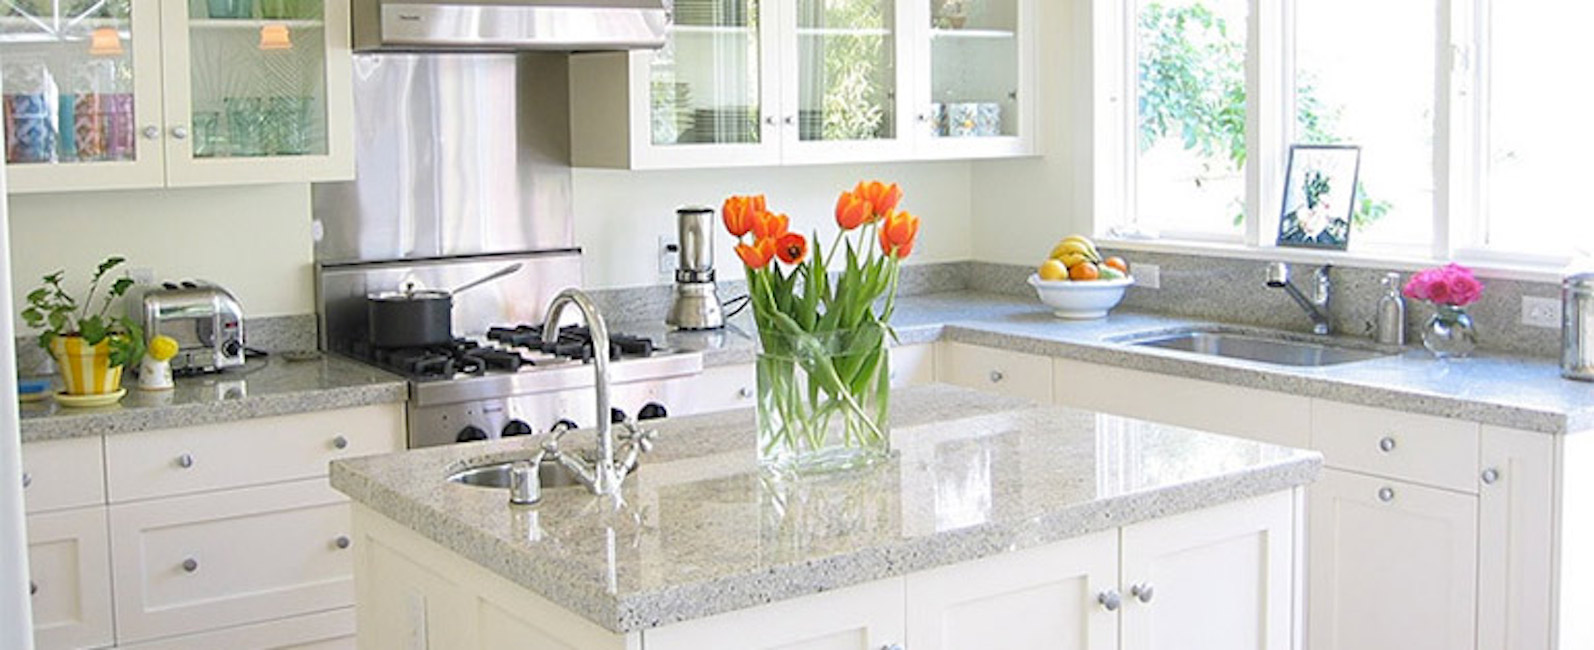 Spring Clean Your Kitchen: Eliminate These 5 Toxins - NBI